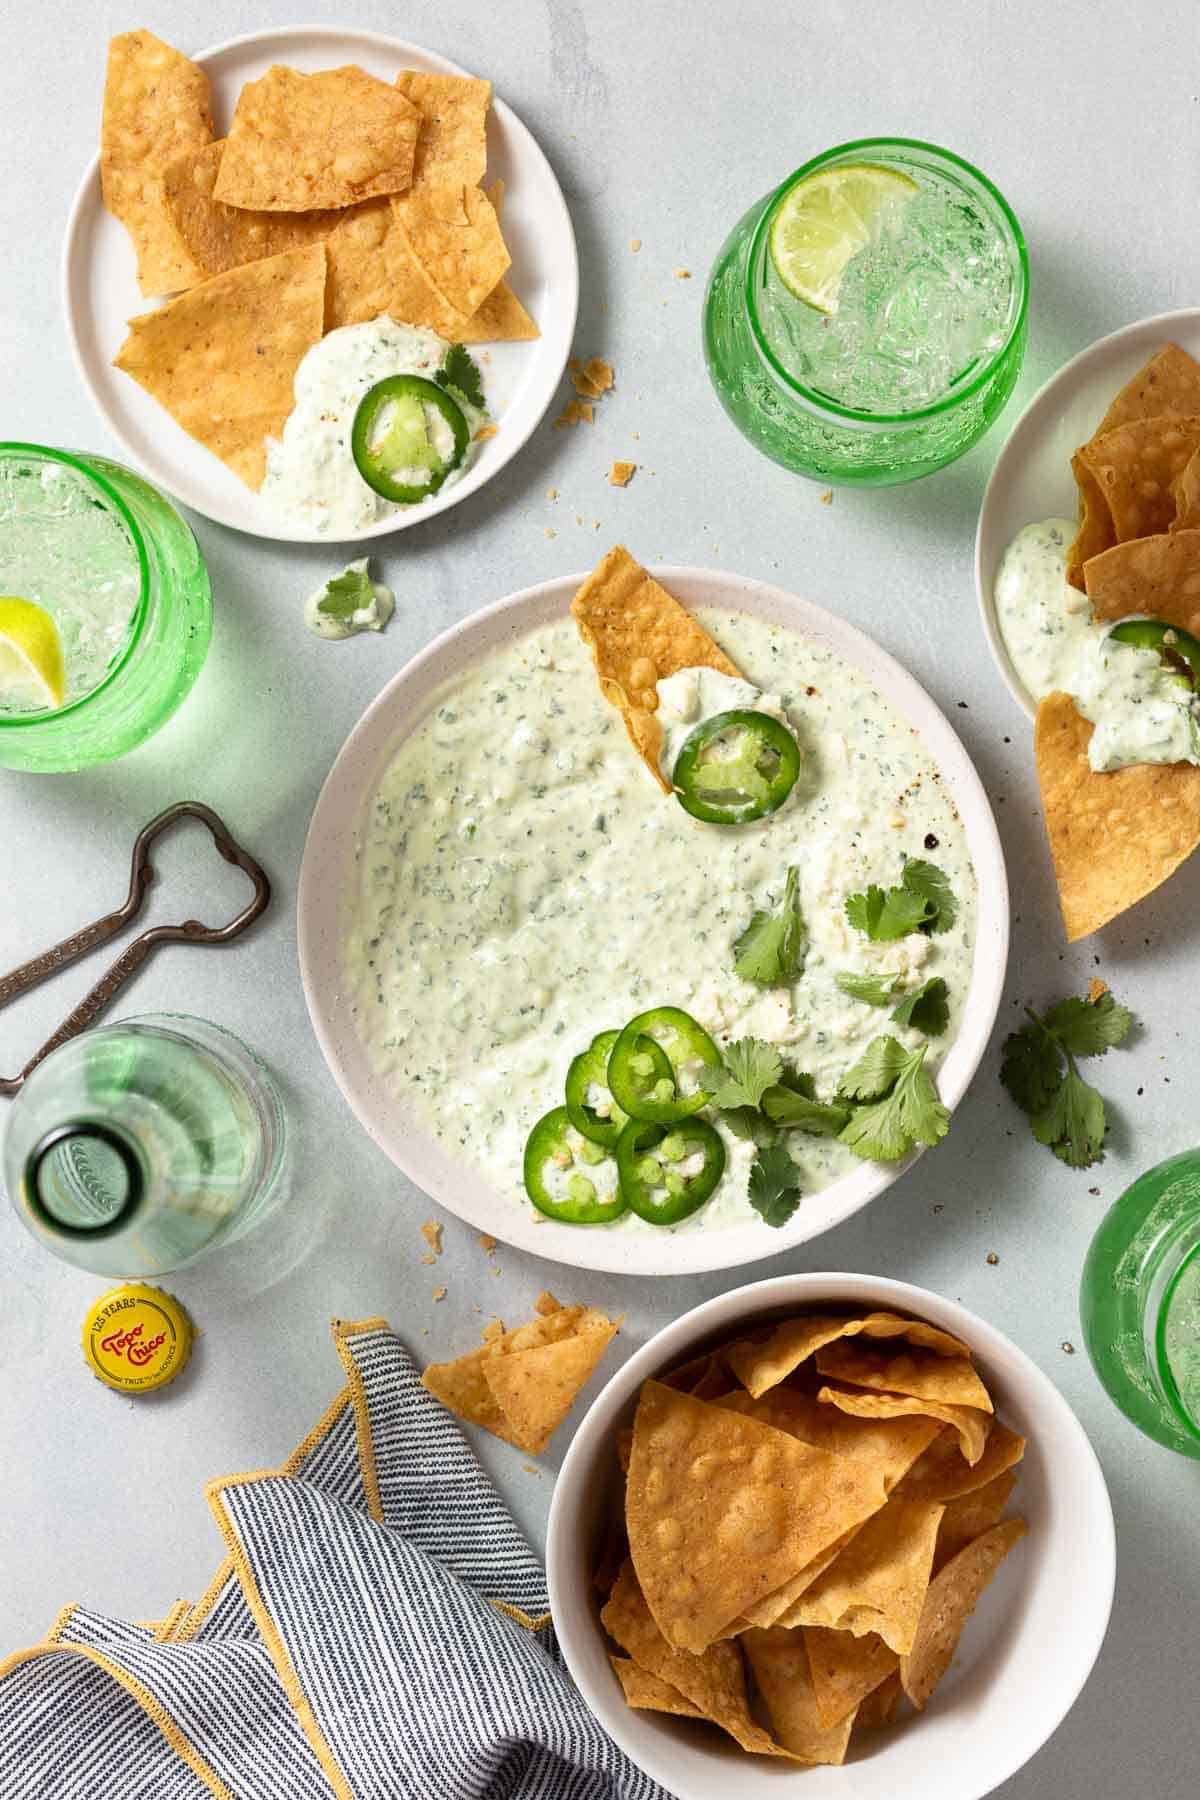 white jalapeno dip next to tortilla chips and cocktails